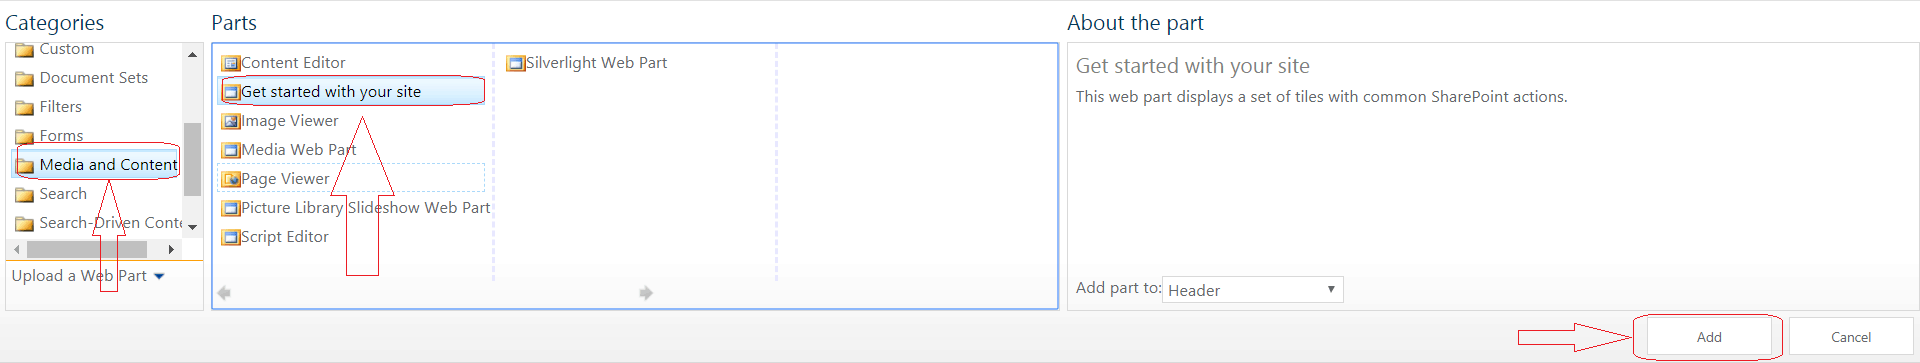 Get started with your Site Web Part in SharePoint 2016